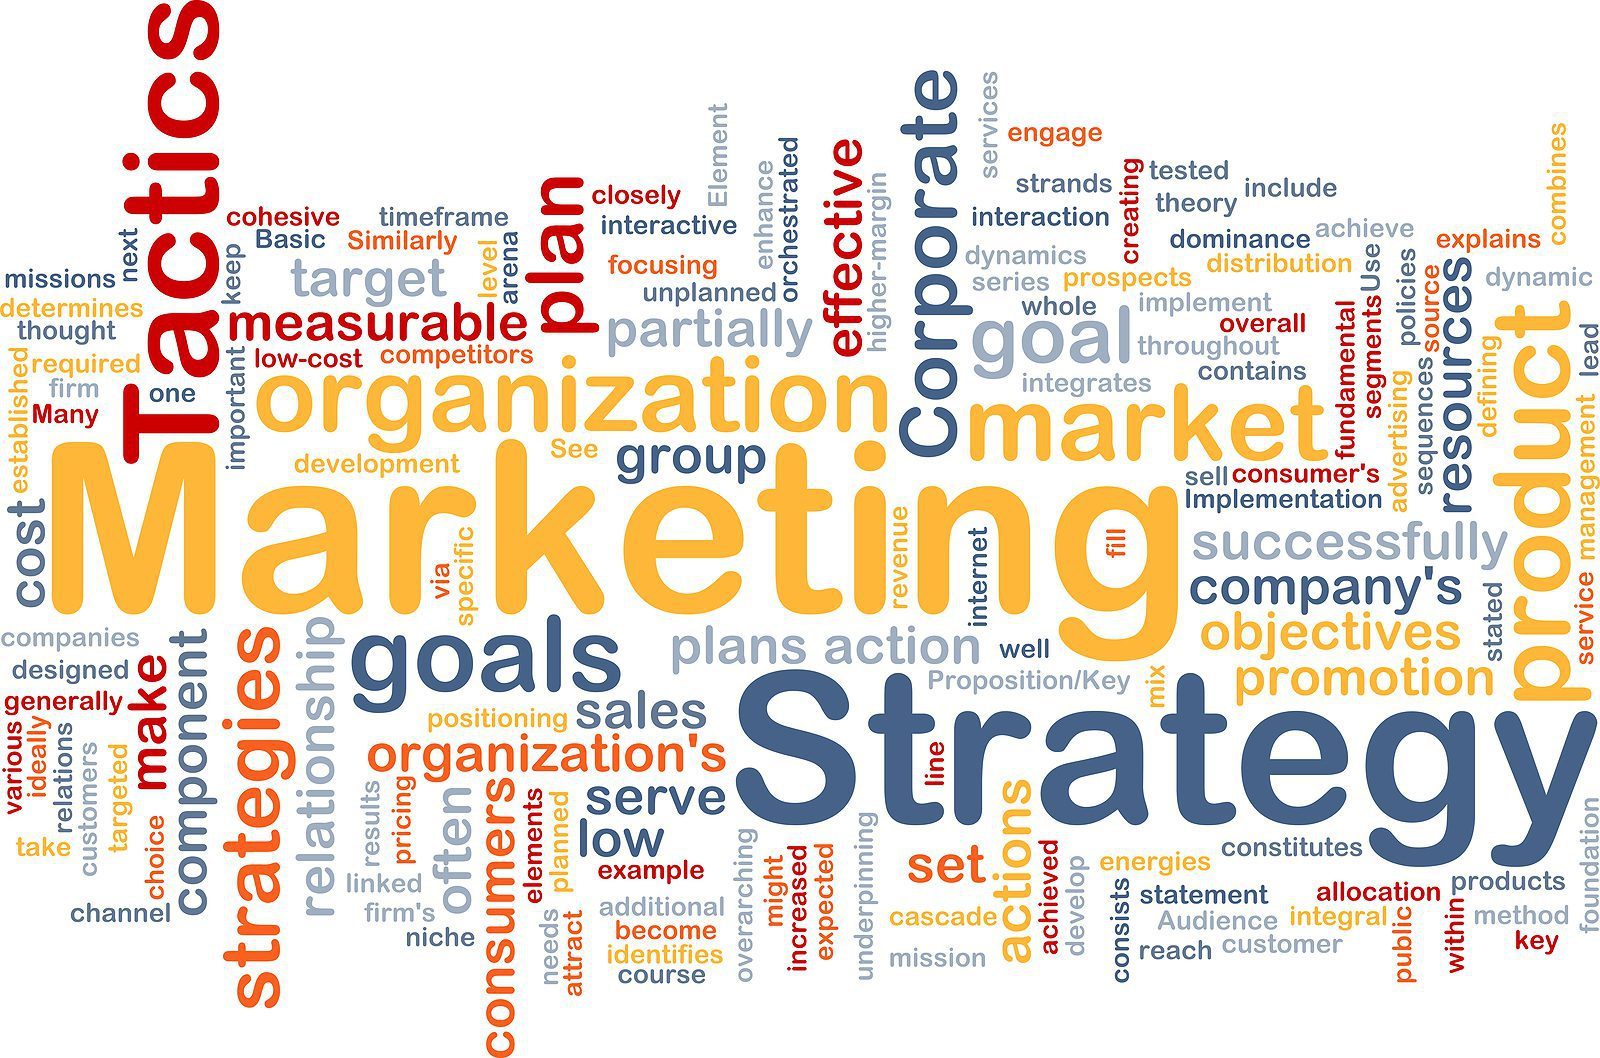 Network Marketing, mlm, direct selling scope in India